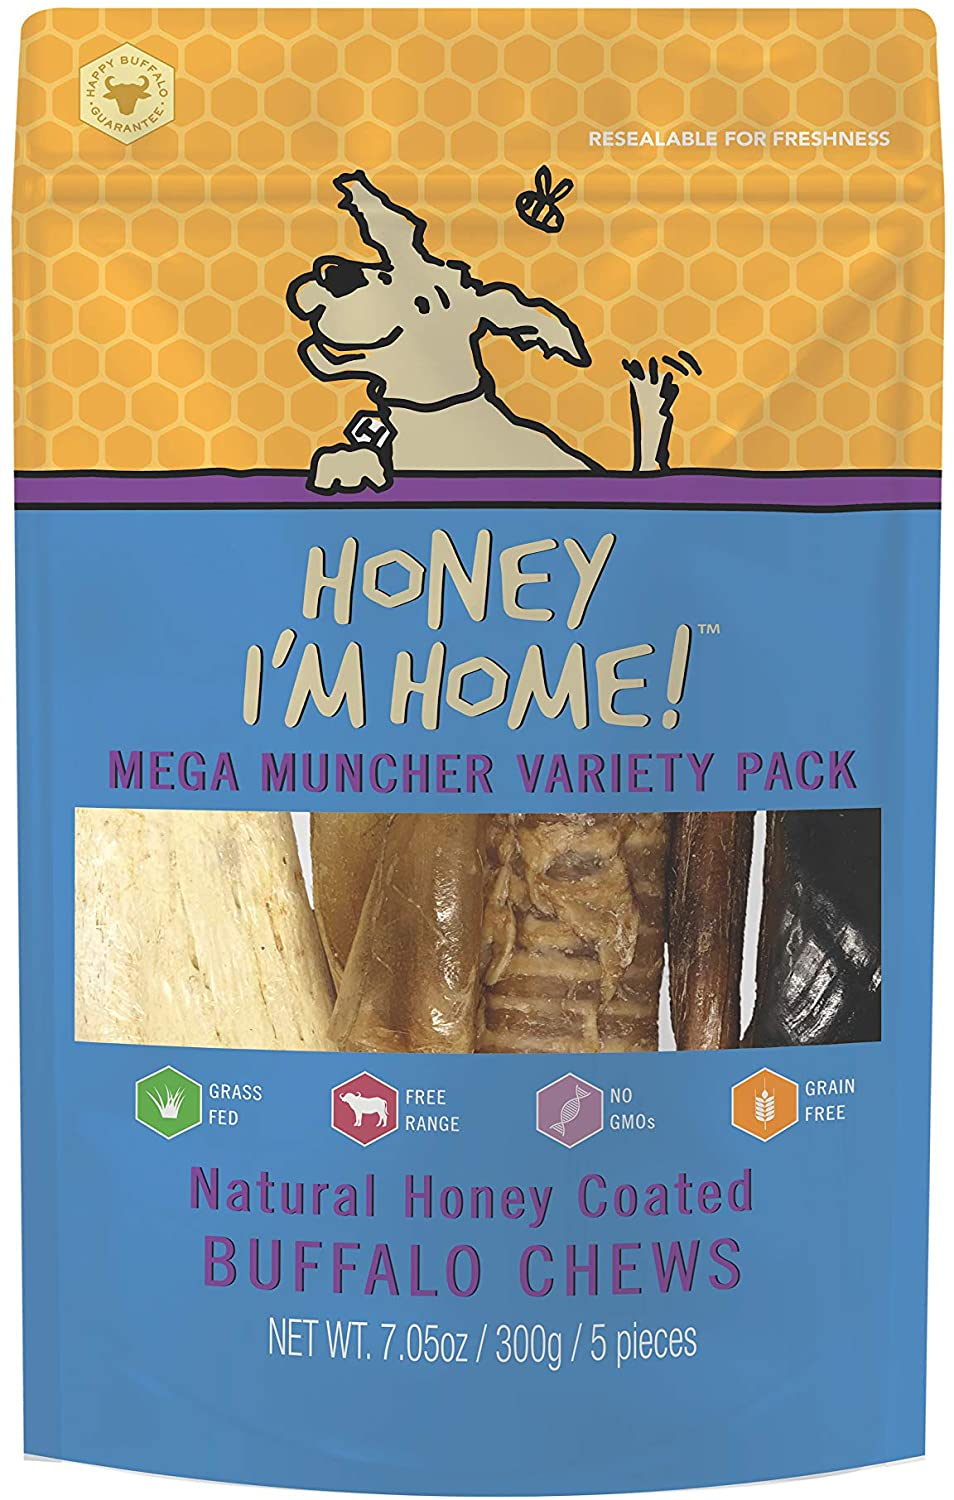 Honey I'm Home Mega Muncher Variety Pack Dog Treats, 5-count